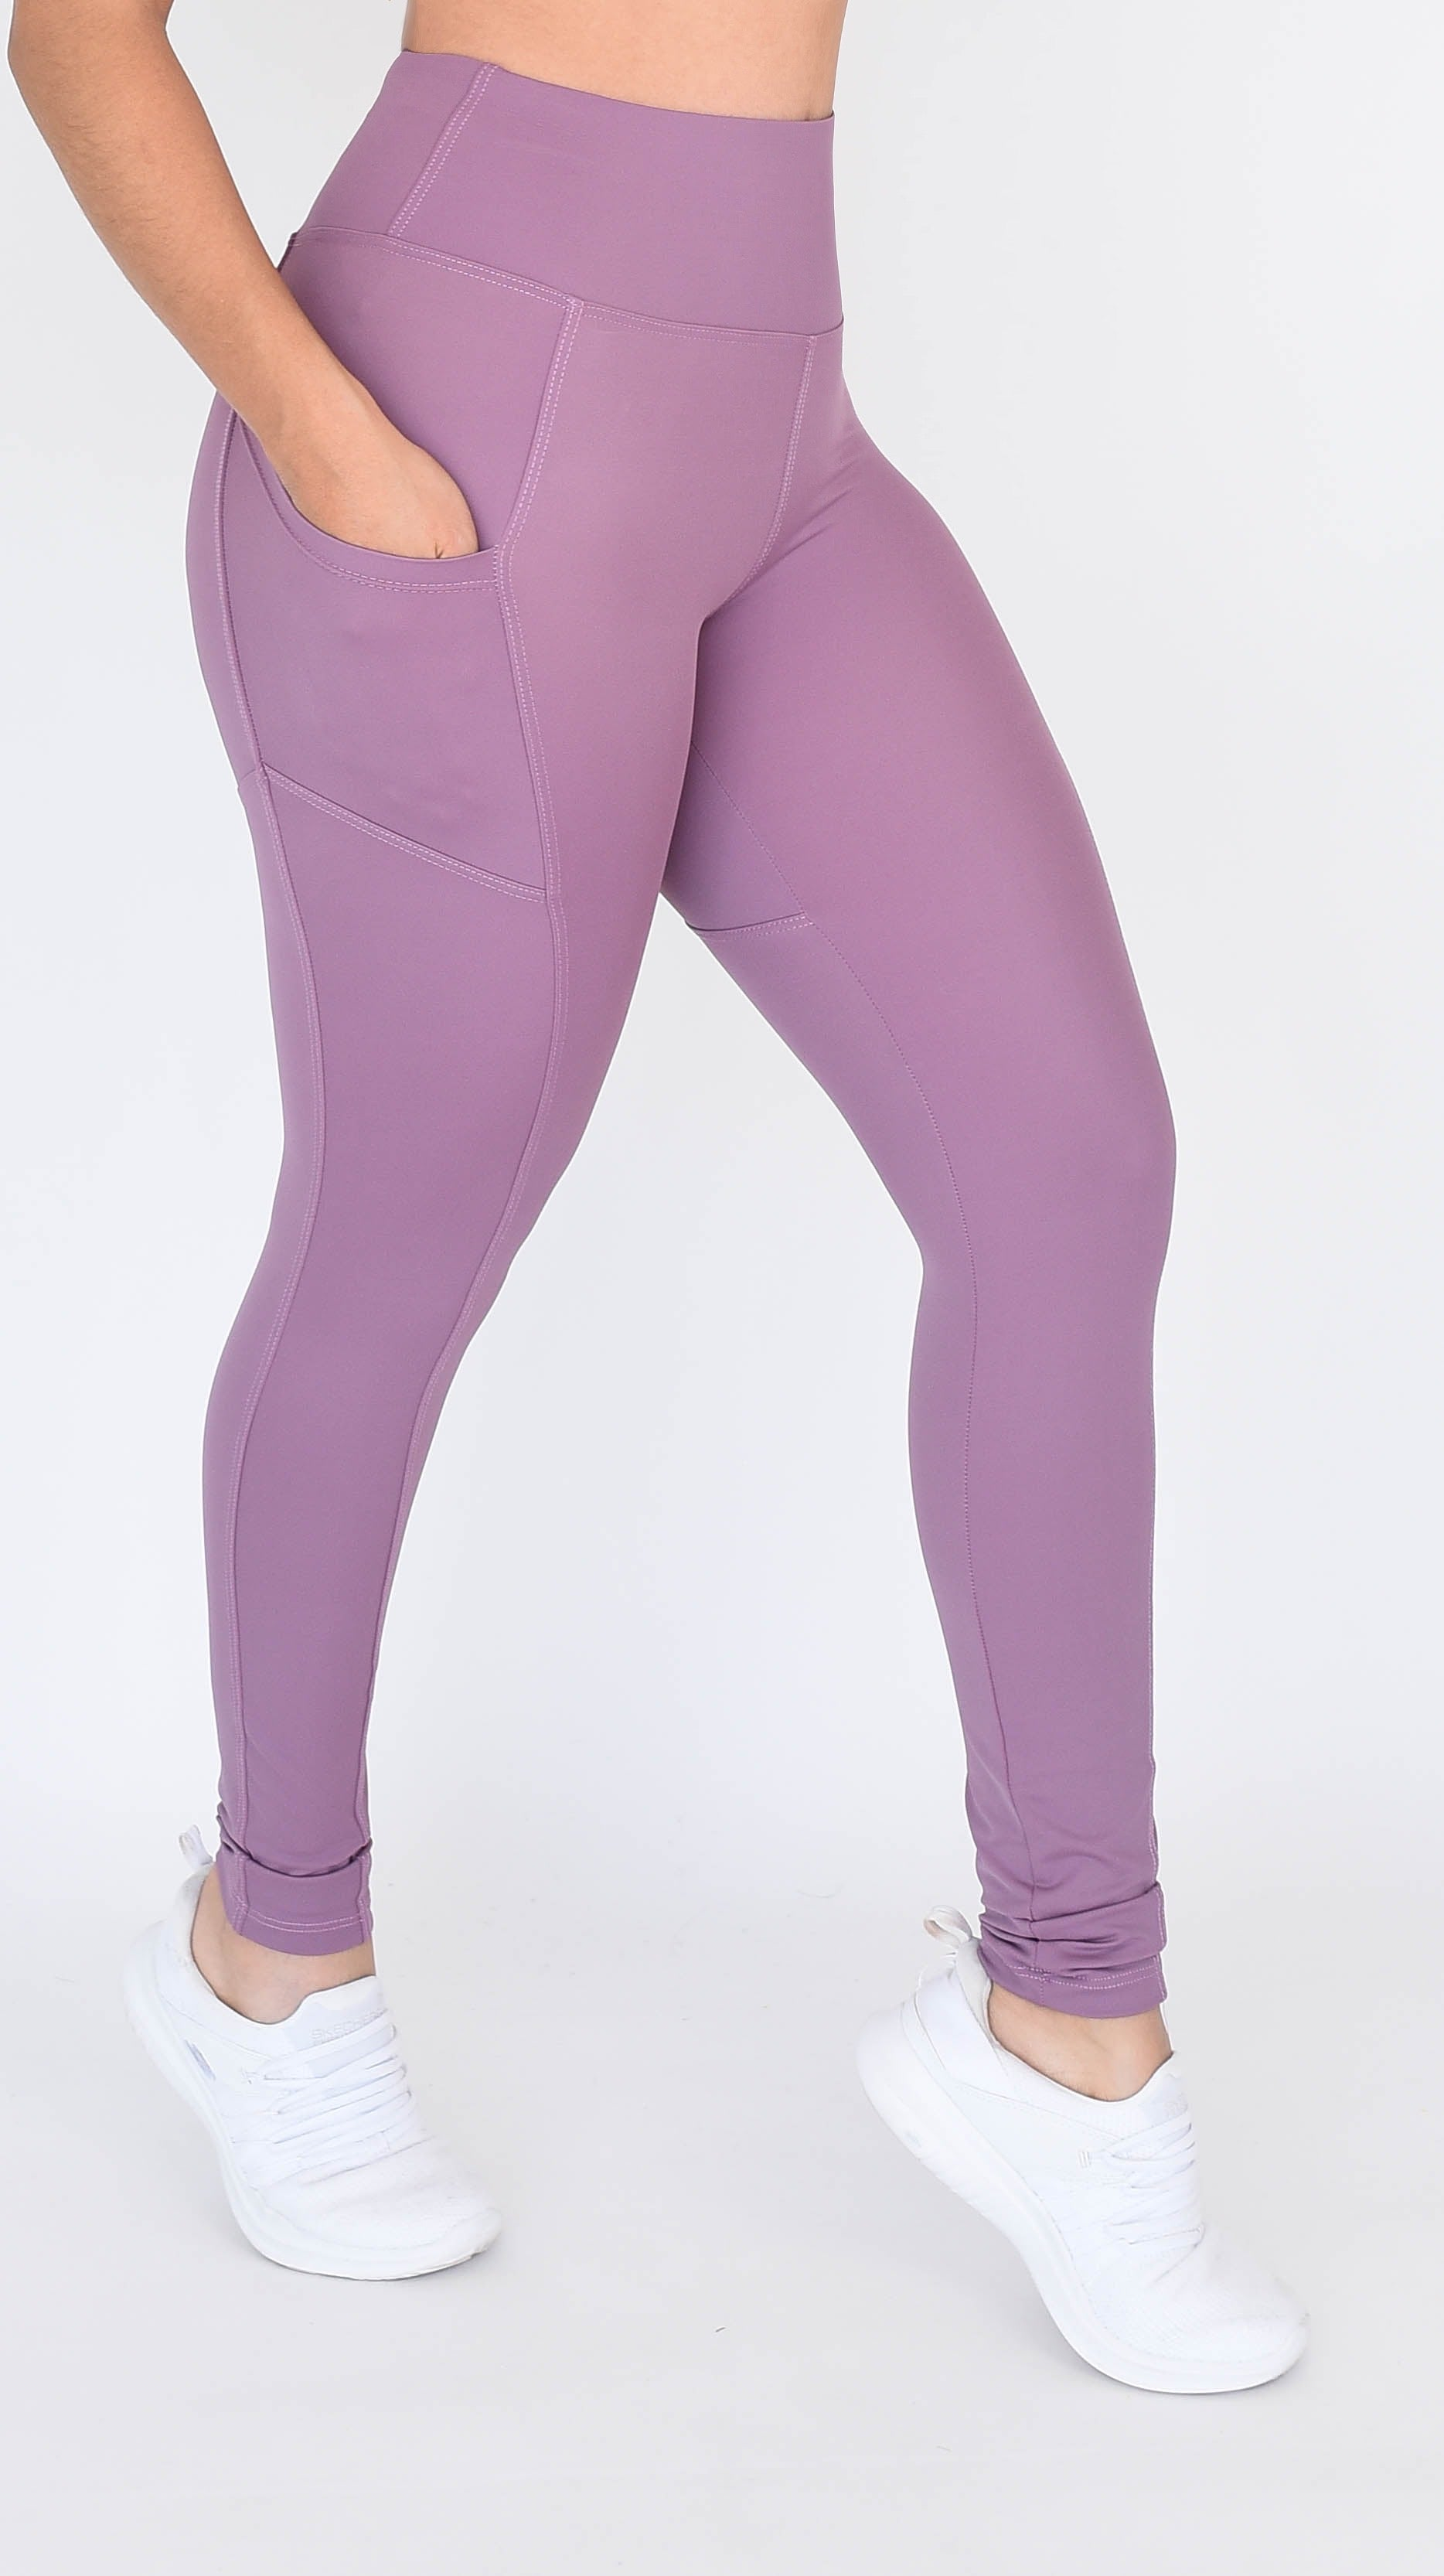 Legging Anti-transparencia Bolsas